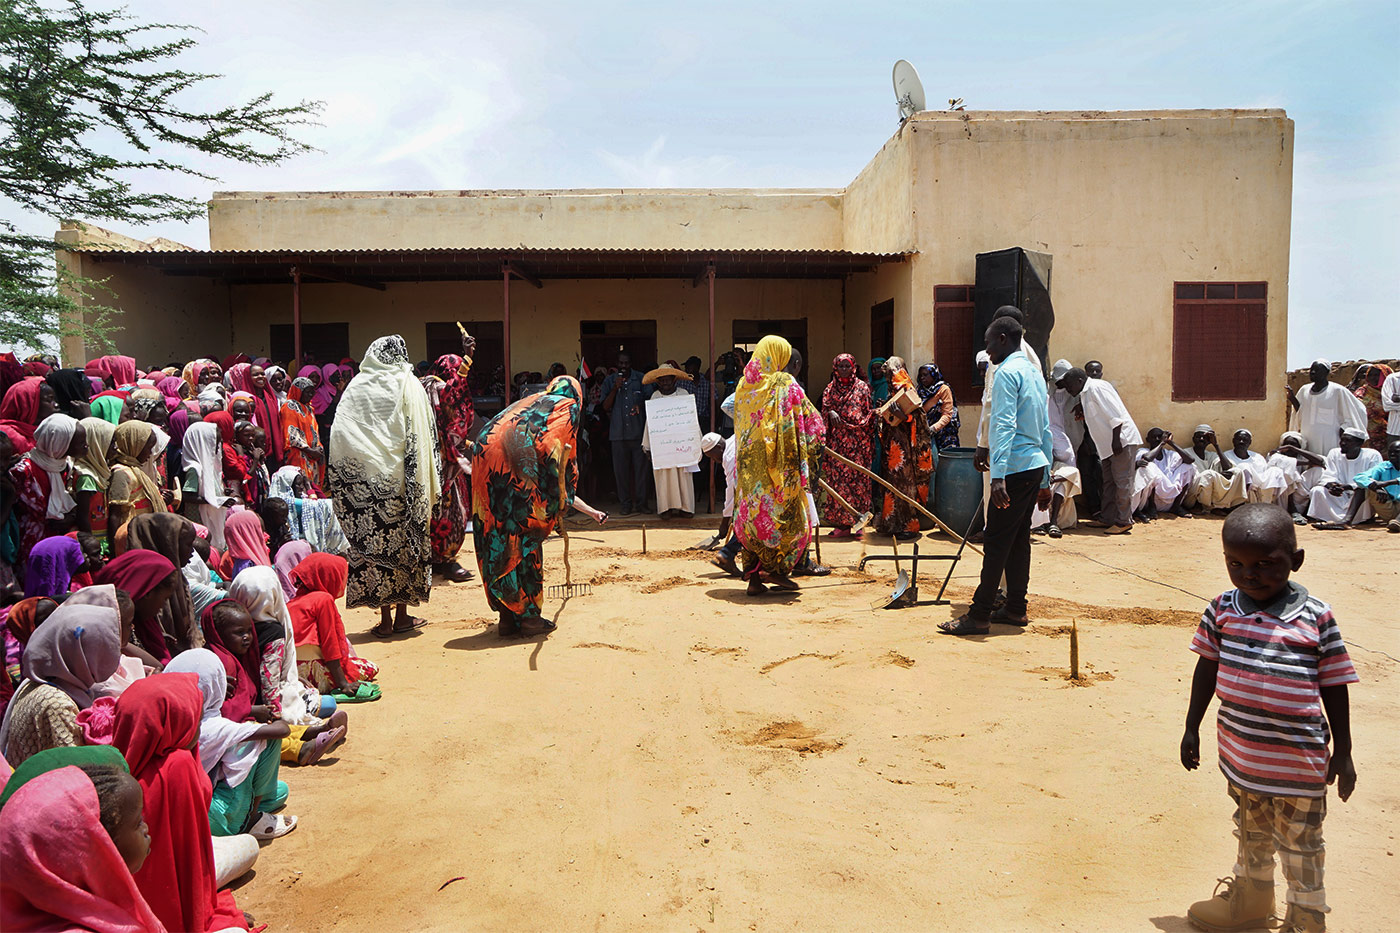 A community celebrating the reversal of desertification in the village of Majhoub, Sudan